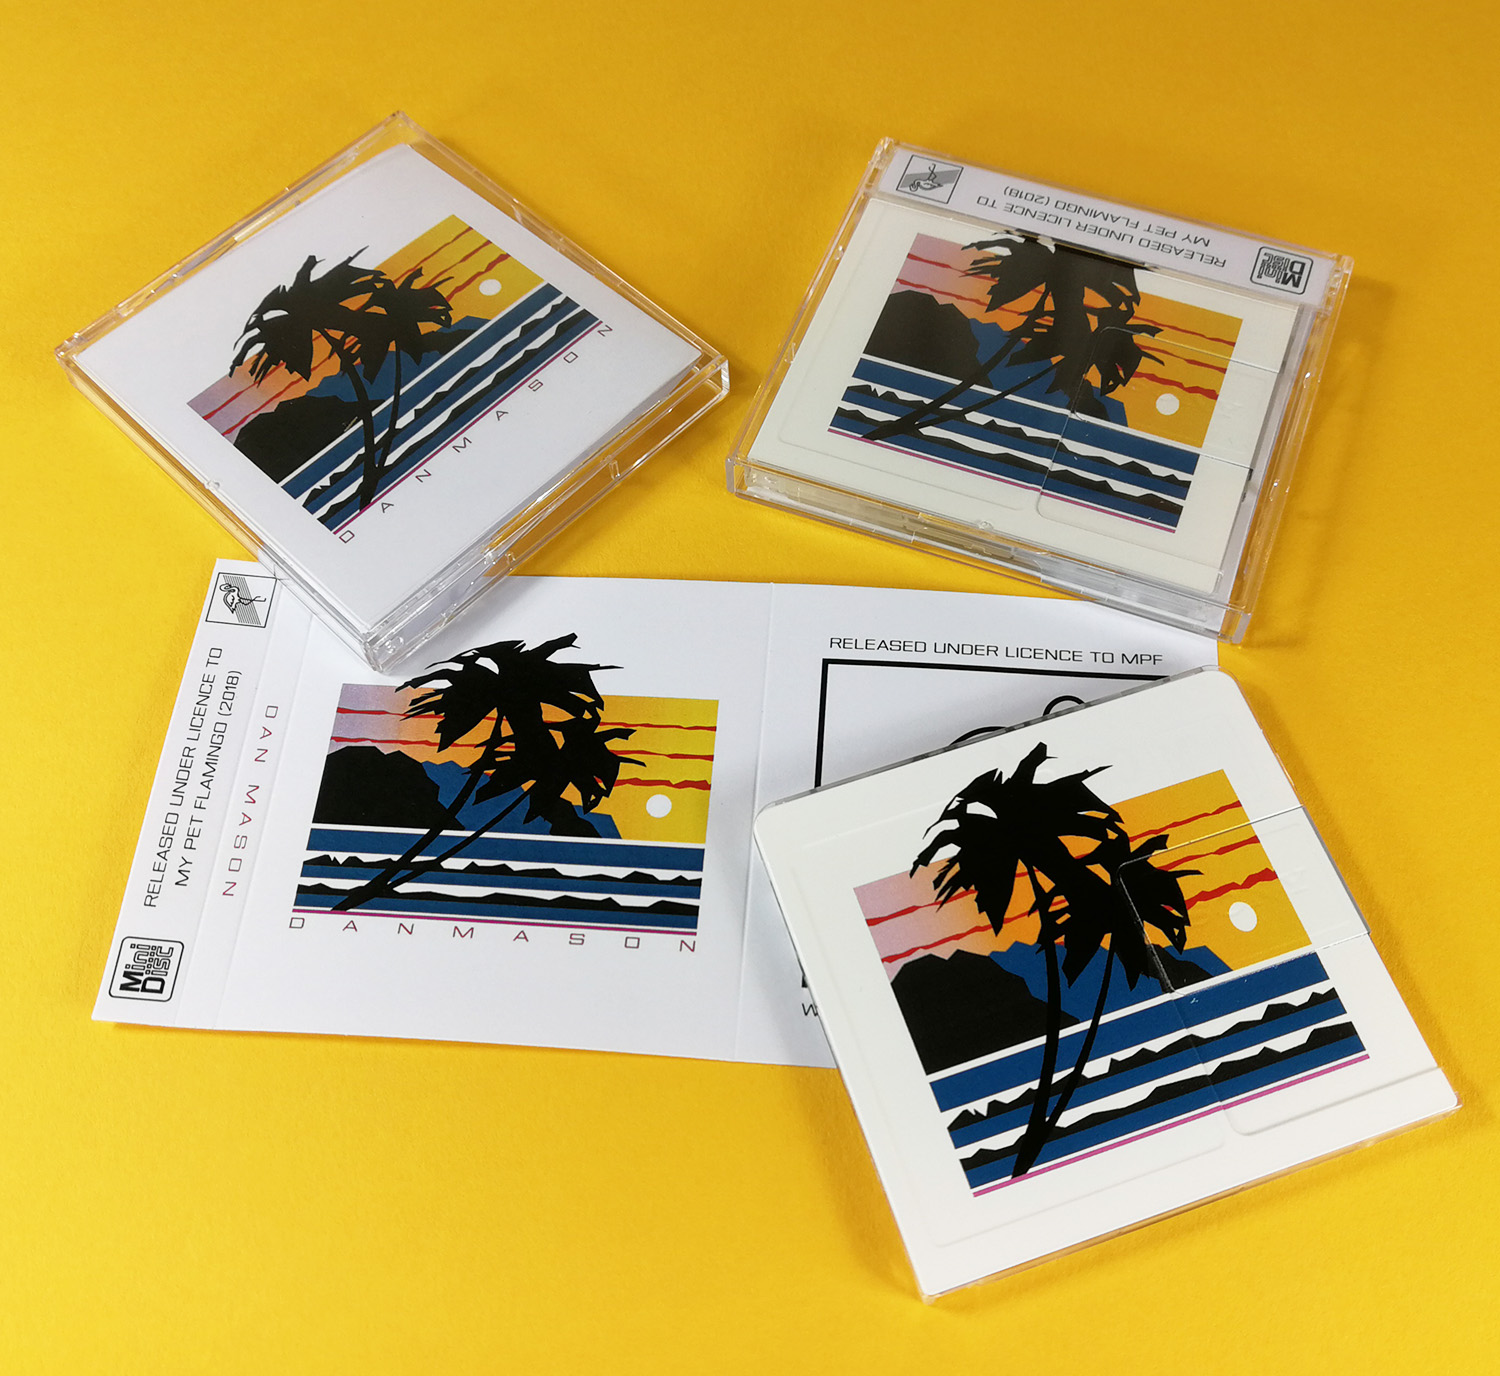 Onbody printed MiniDiscs and matching inserts